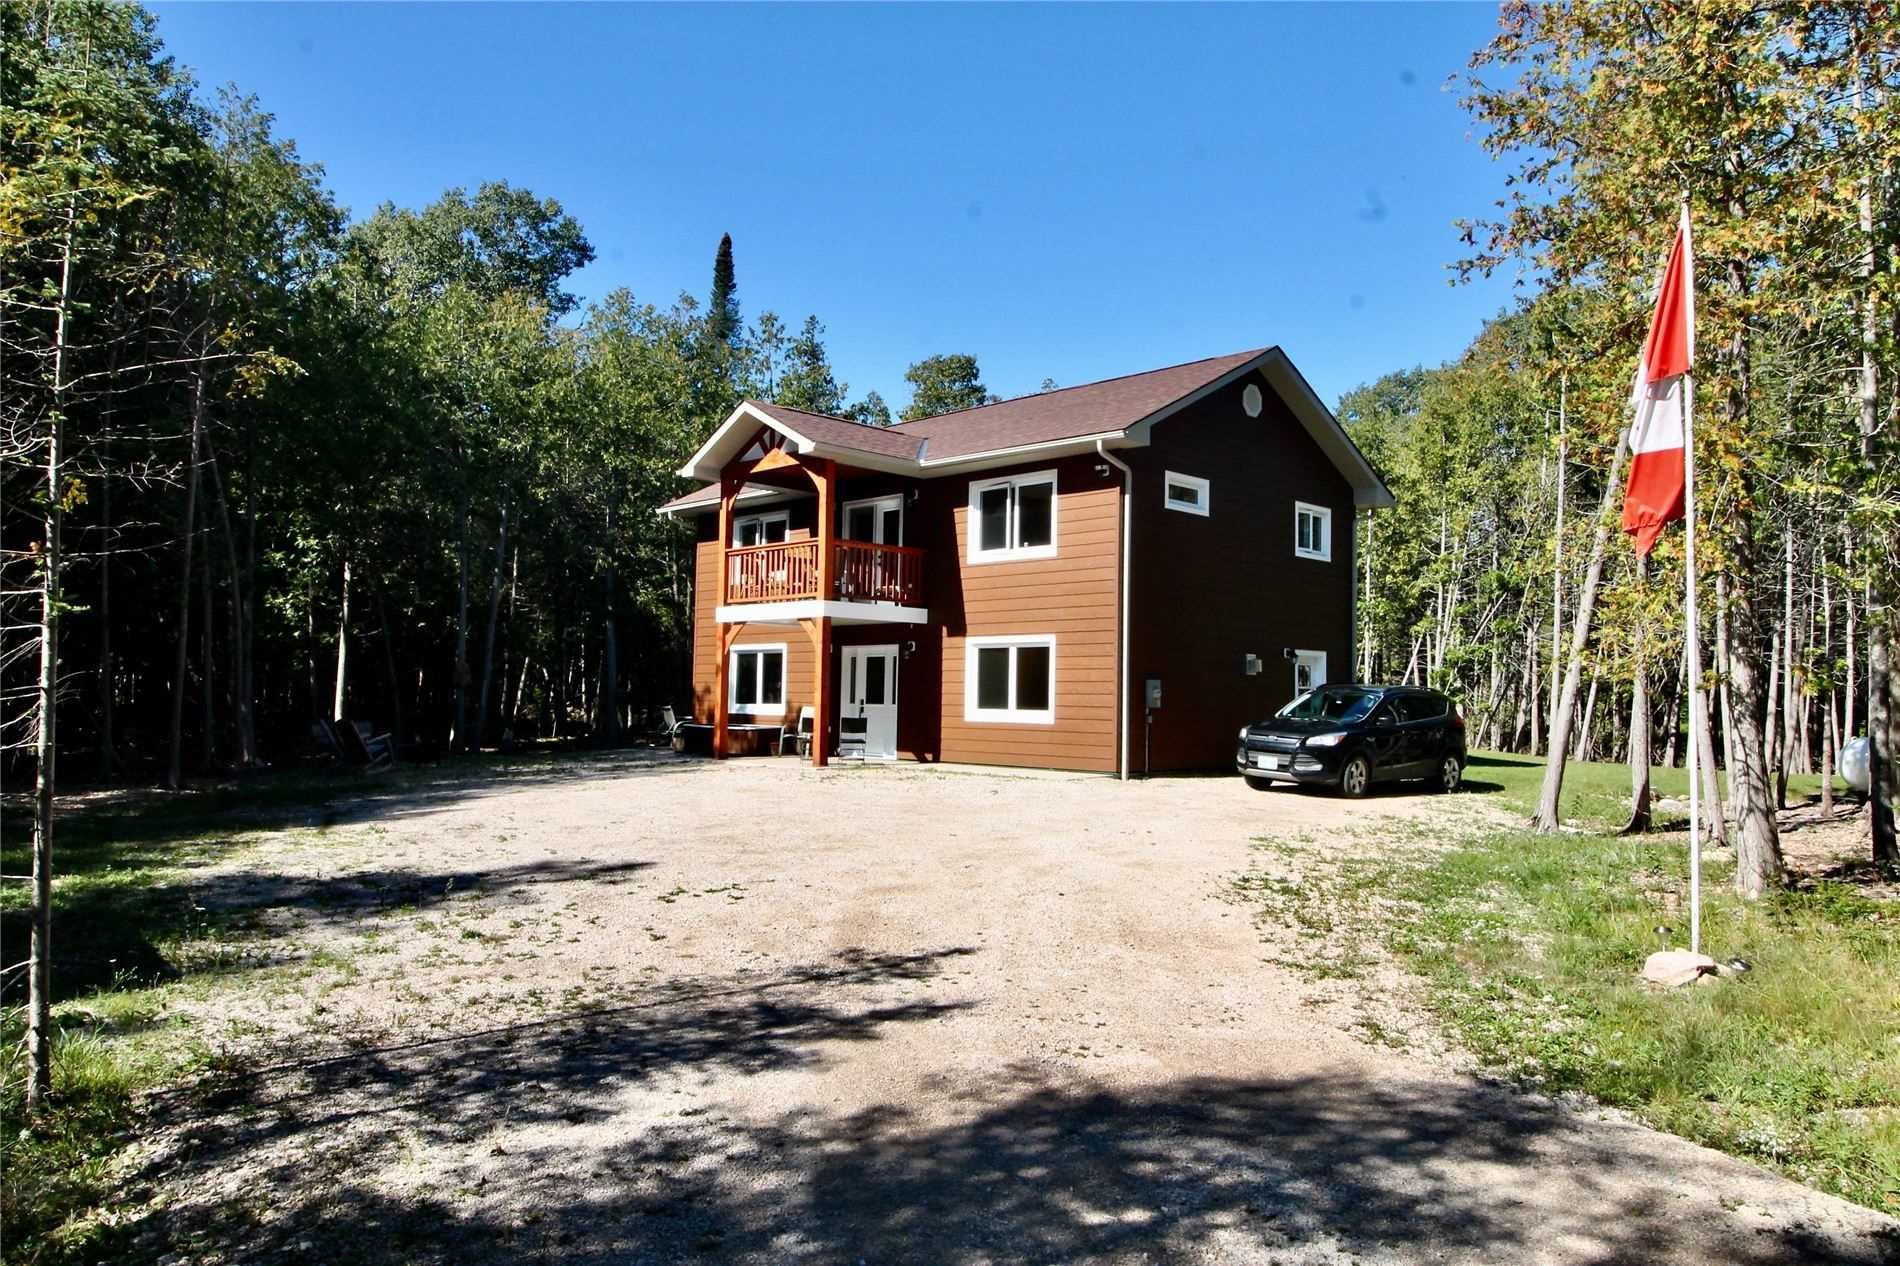 Detached house For Sale In Northern Bruce Peninsula - 614 Pike Bay Rd, Northern Bruce Peninsula, Ontario, Canada N0H 1X0 , 3 Bedrooms Bedrooms, ,2 BathroomsBathrooms,Detached,For Sale,Pike Bay